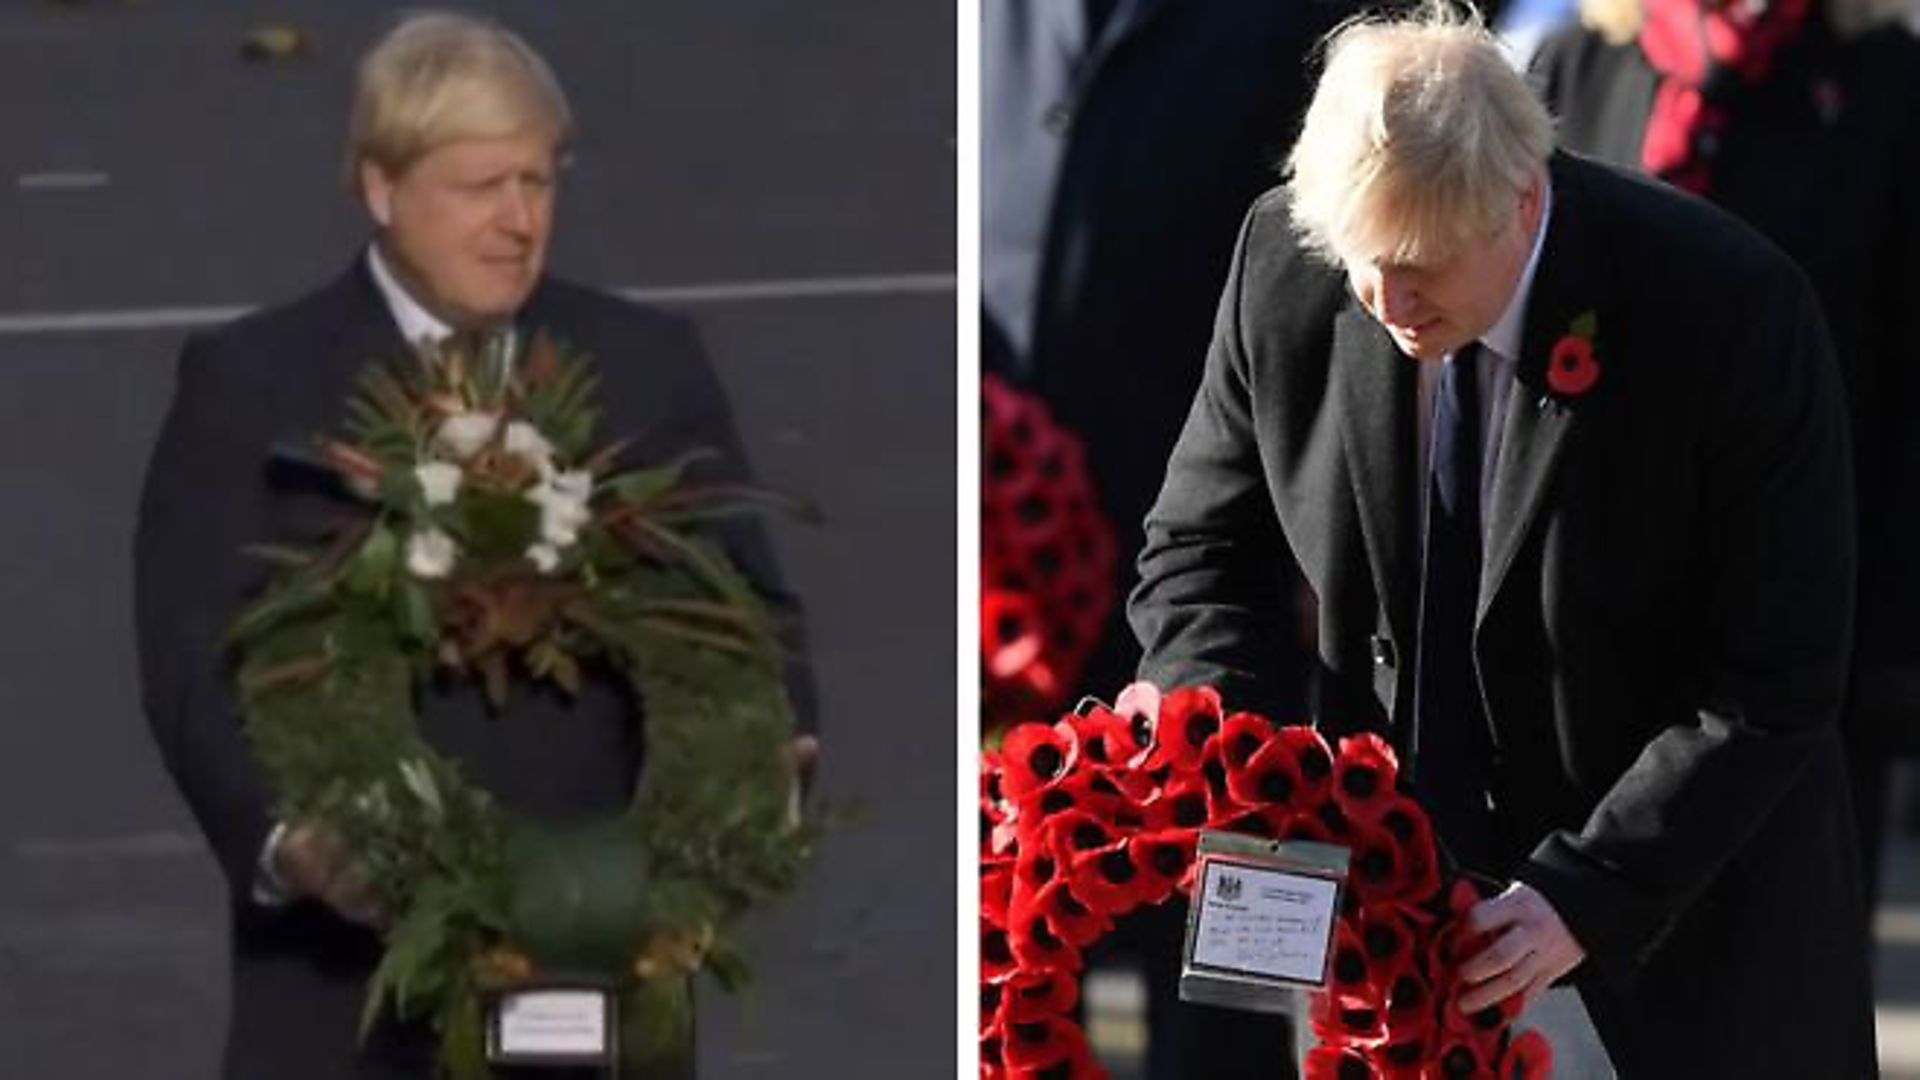 Boris Johnson with his wreath at the cenotaph. Photo: Getty Images and BBC - Credit: Getty Images and BBC